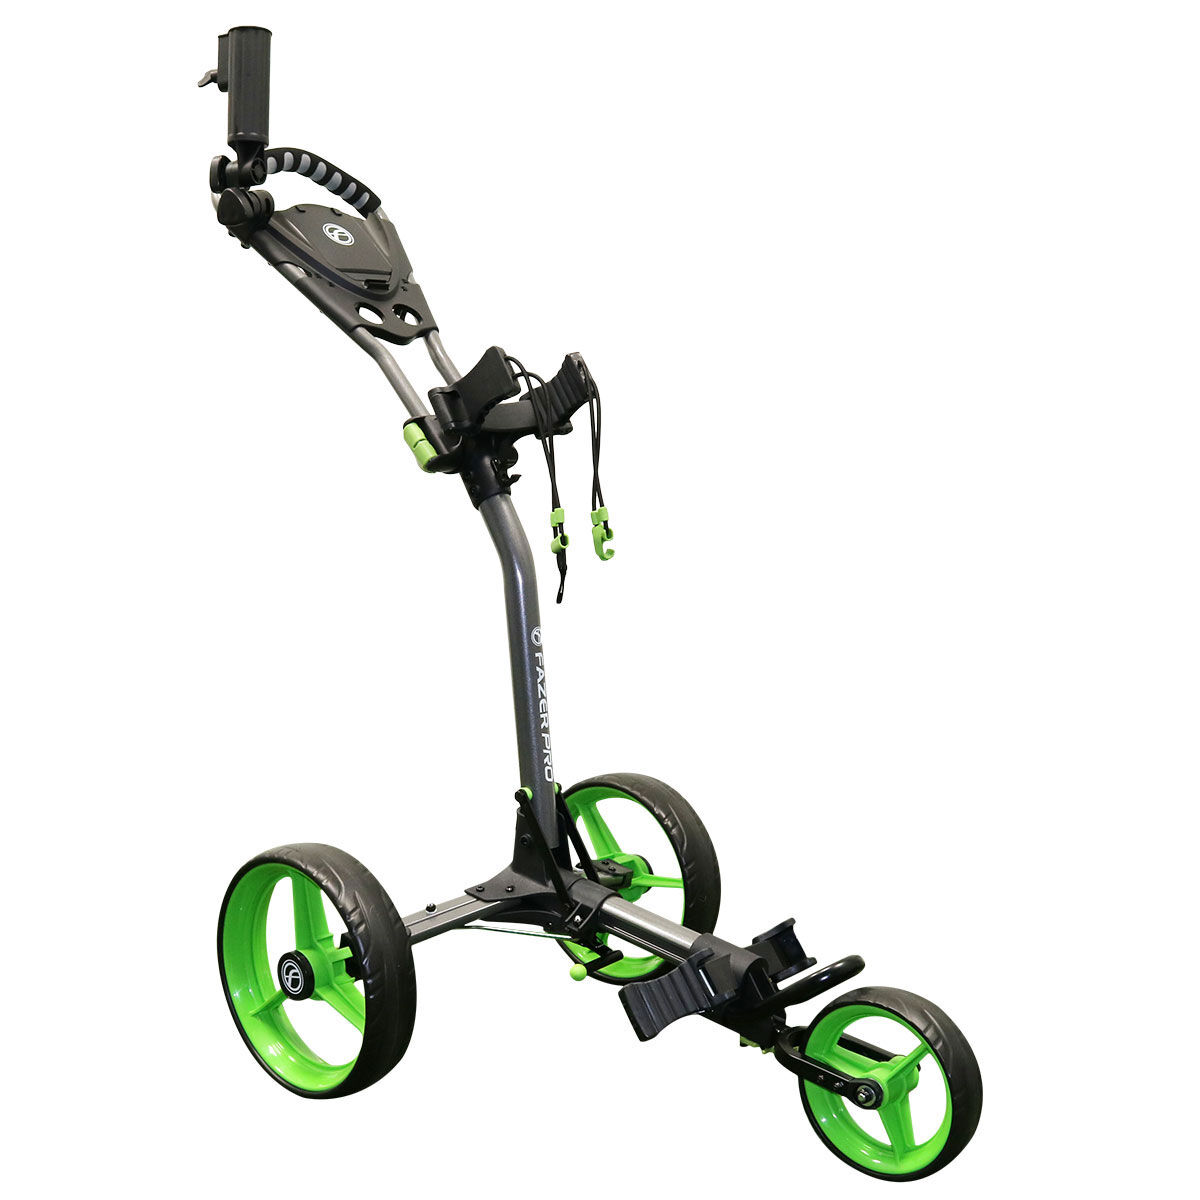 Fazer Pro Compact Push Golf Trolley, Graphite/lime, One Size | American Golf